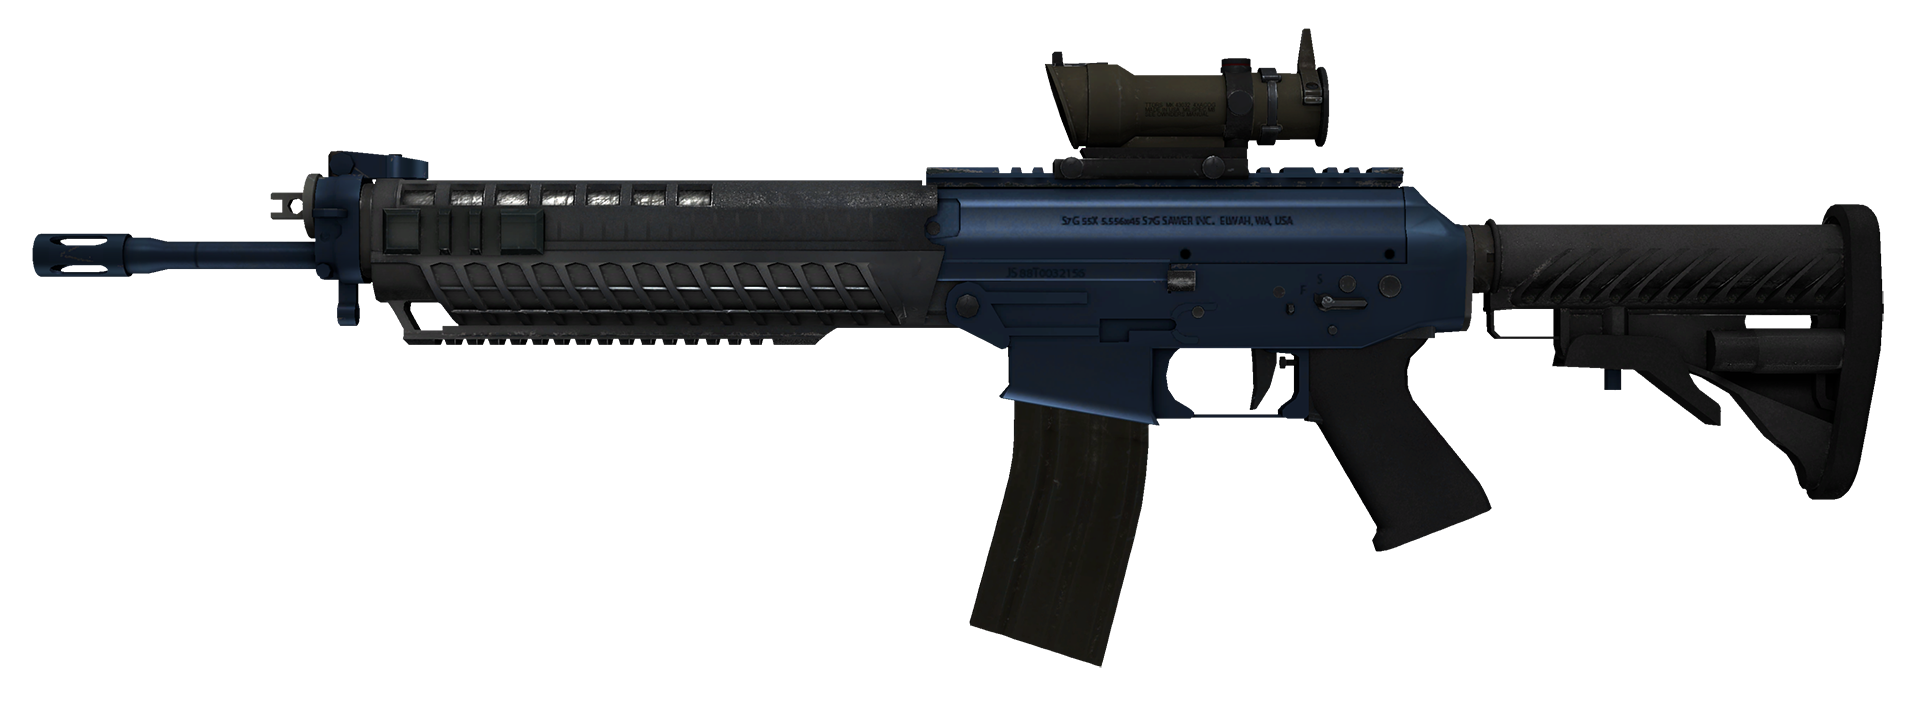 SG 553 Anodized Navy Large Rendering